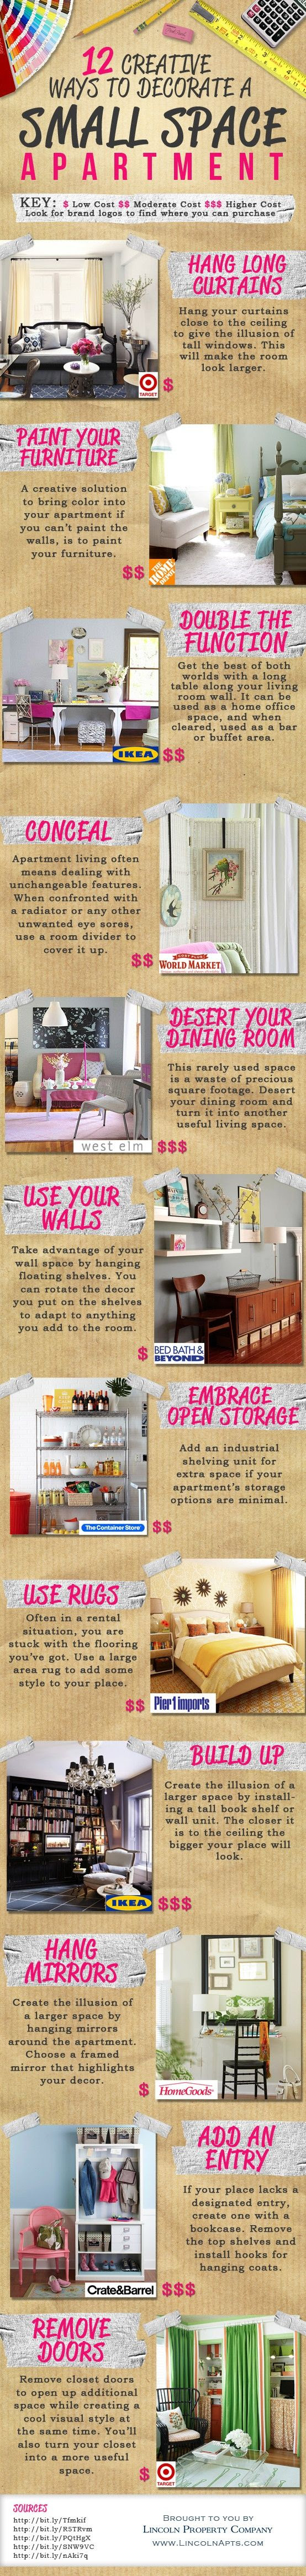 Decorating ideas Redecorating is a serious financial undertaking if you want to do it right and so a currency transfer could be the best way to go about getting what you need for a renovation project. Let us help you save money! www.currenciesdirect.com